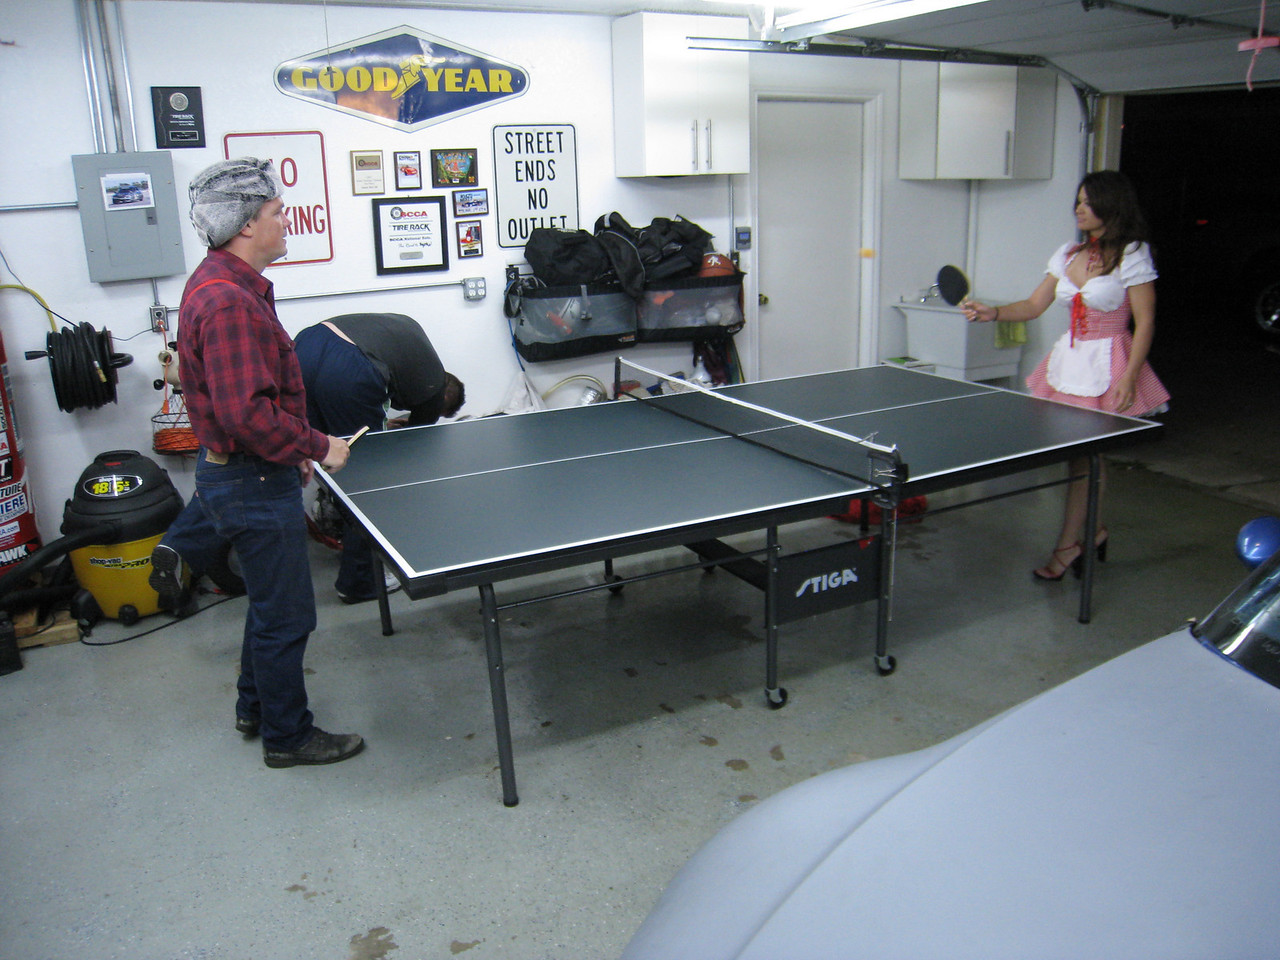 A little ping pong anybody?